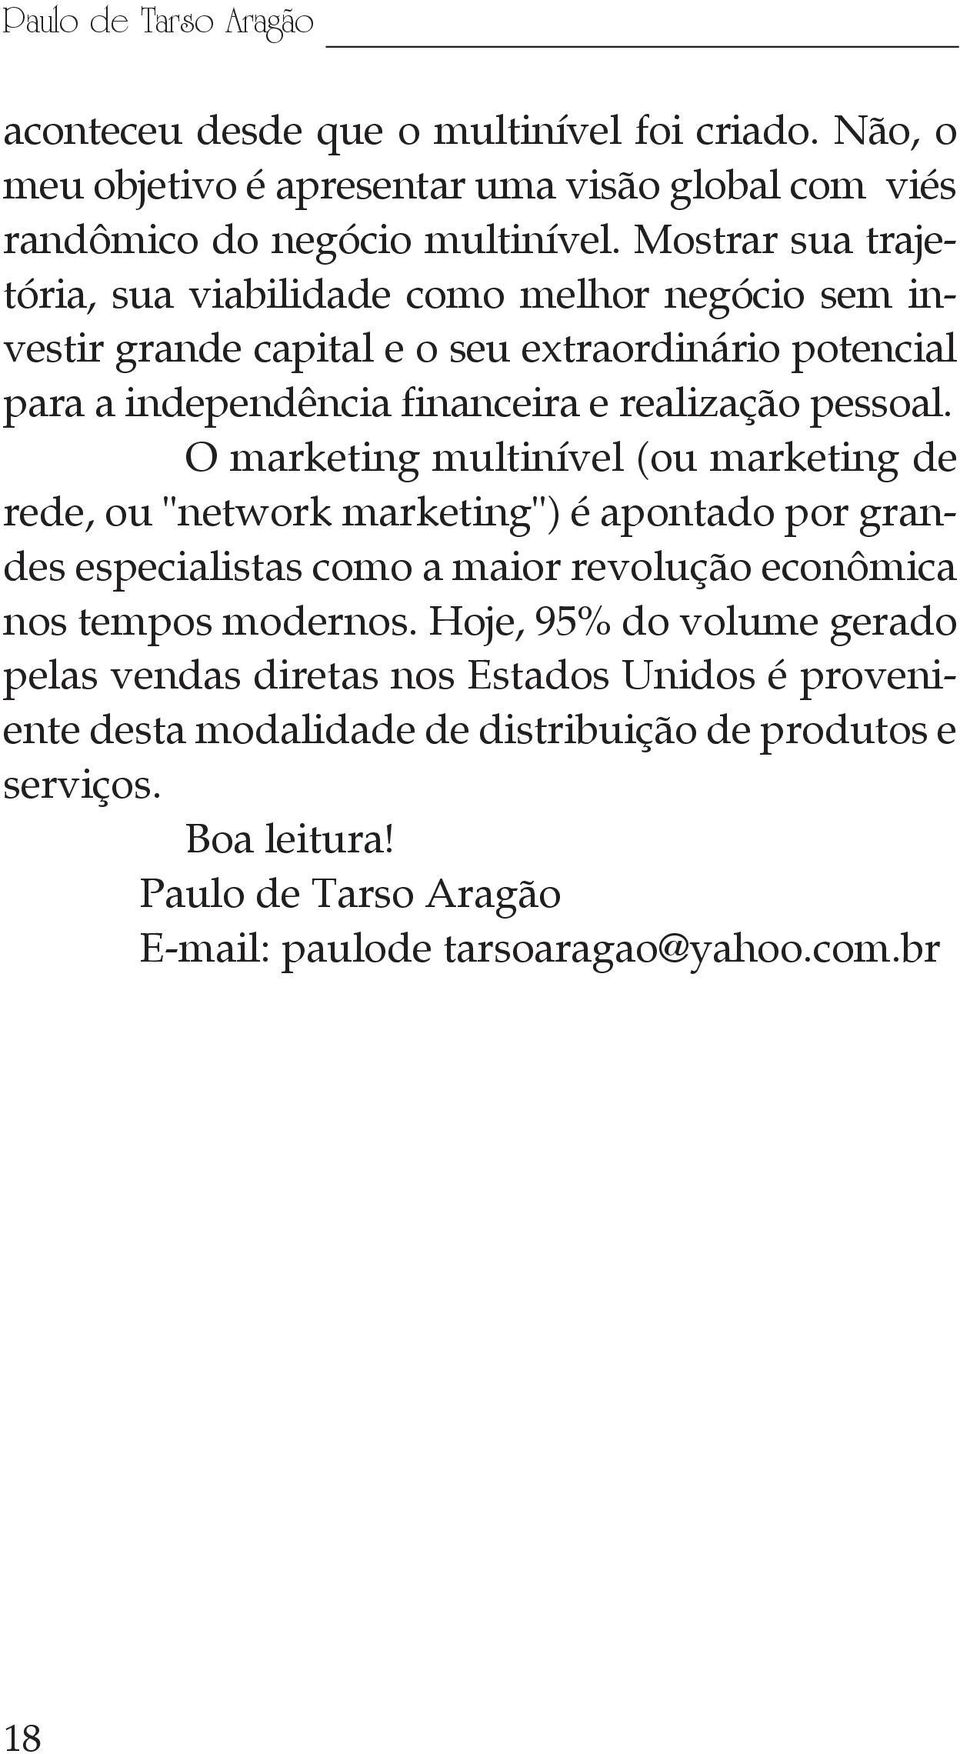 "O marketing multinível (ou marketing de rede, ou ""network marketing"") é apontado por grandes especialistas como a maior revolução econômica nos tempos modernos."